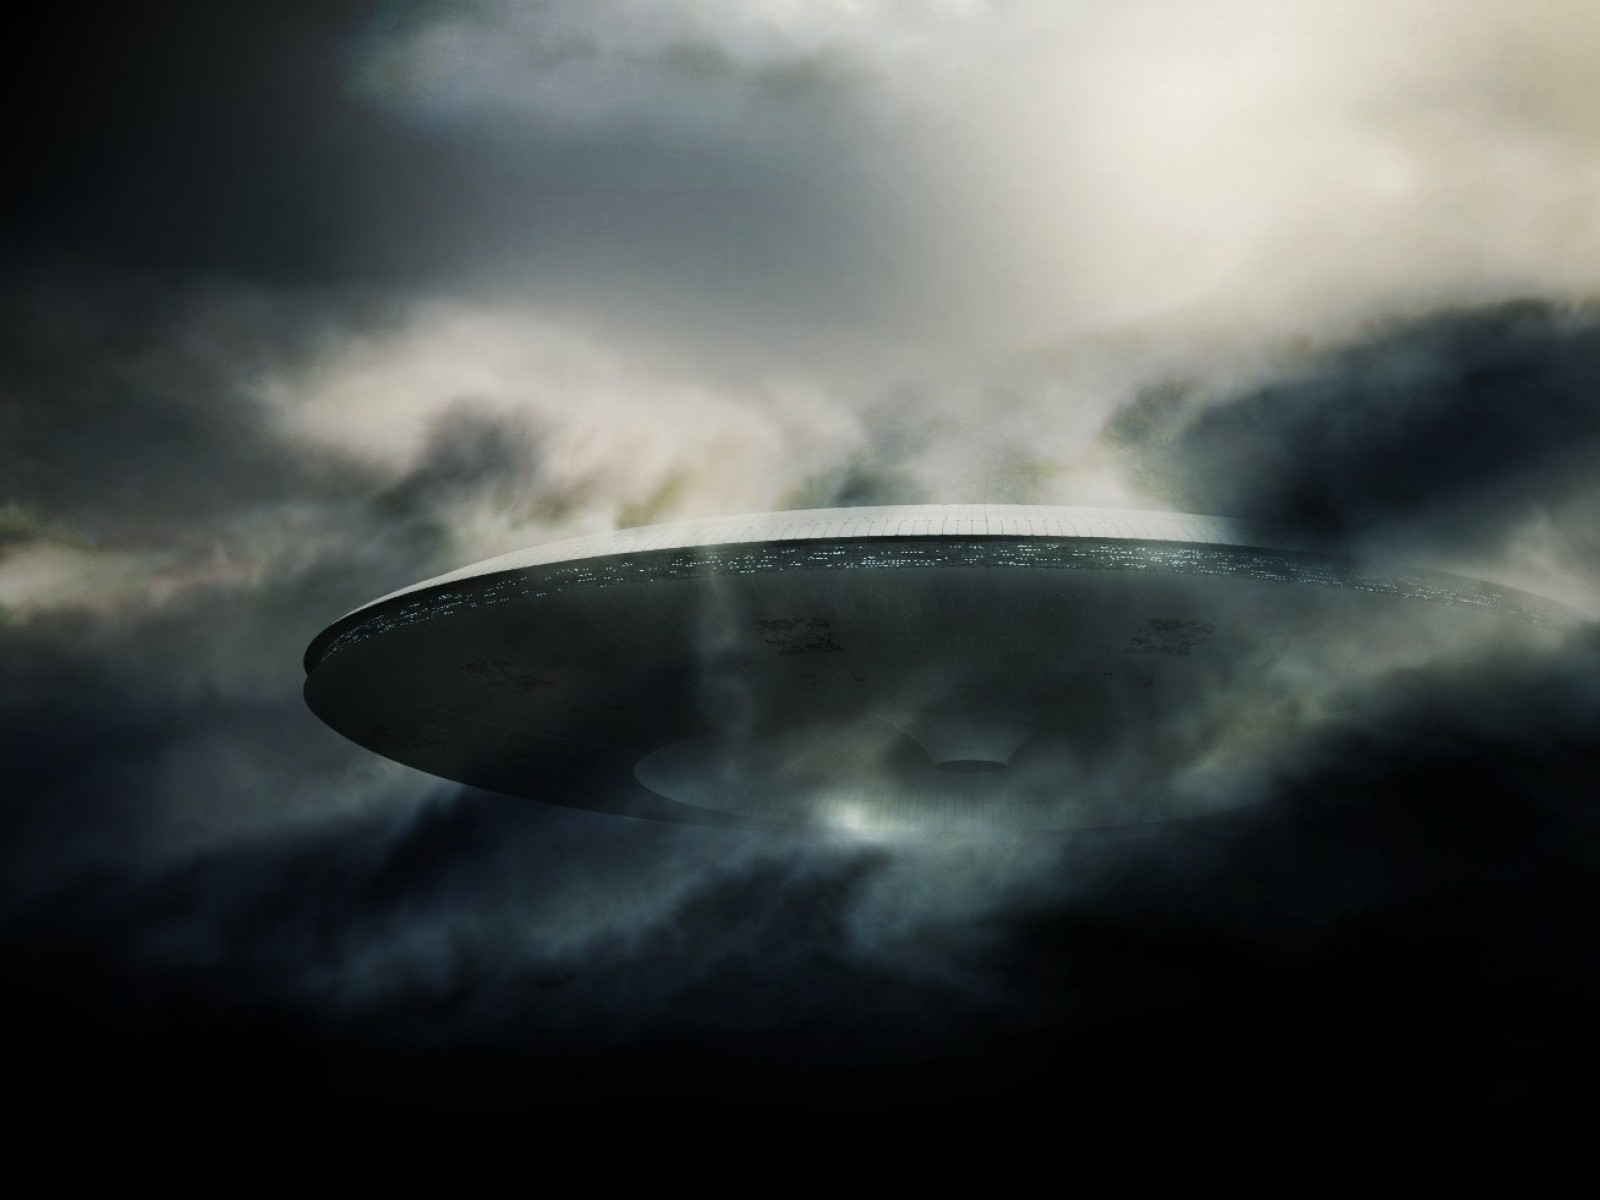 Spaceship Clouds ufo alien aliens spaceships wallpaper 1600x1200 1600x1200